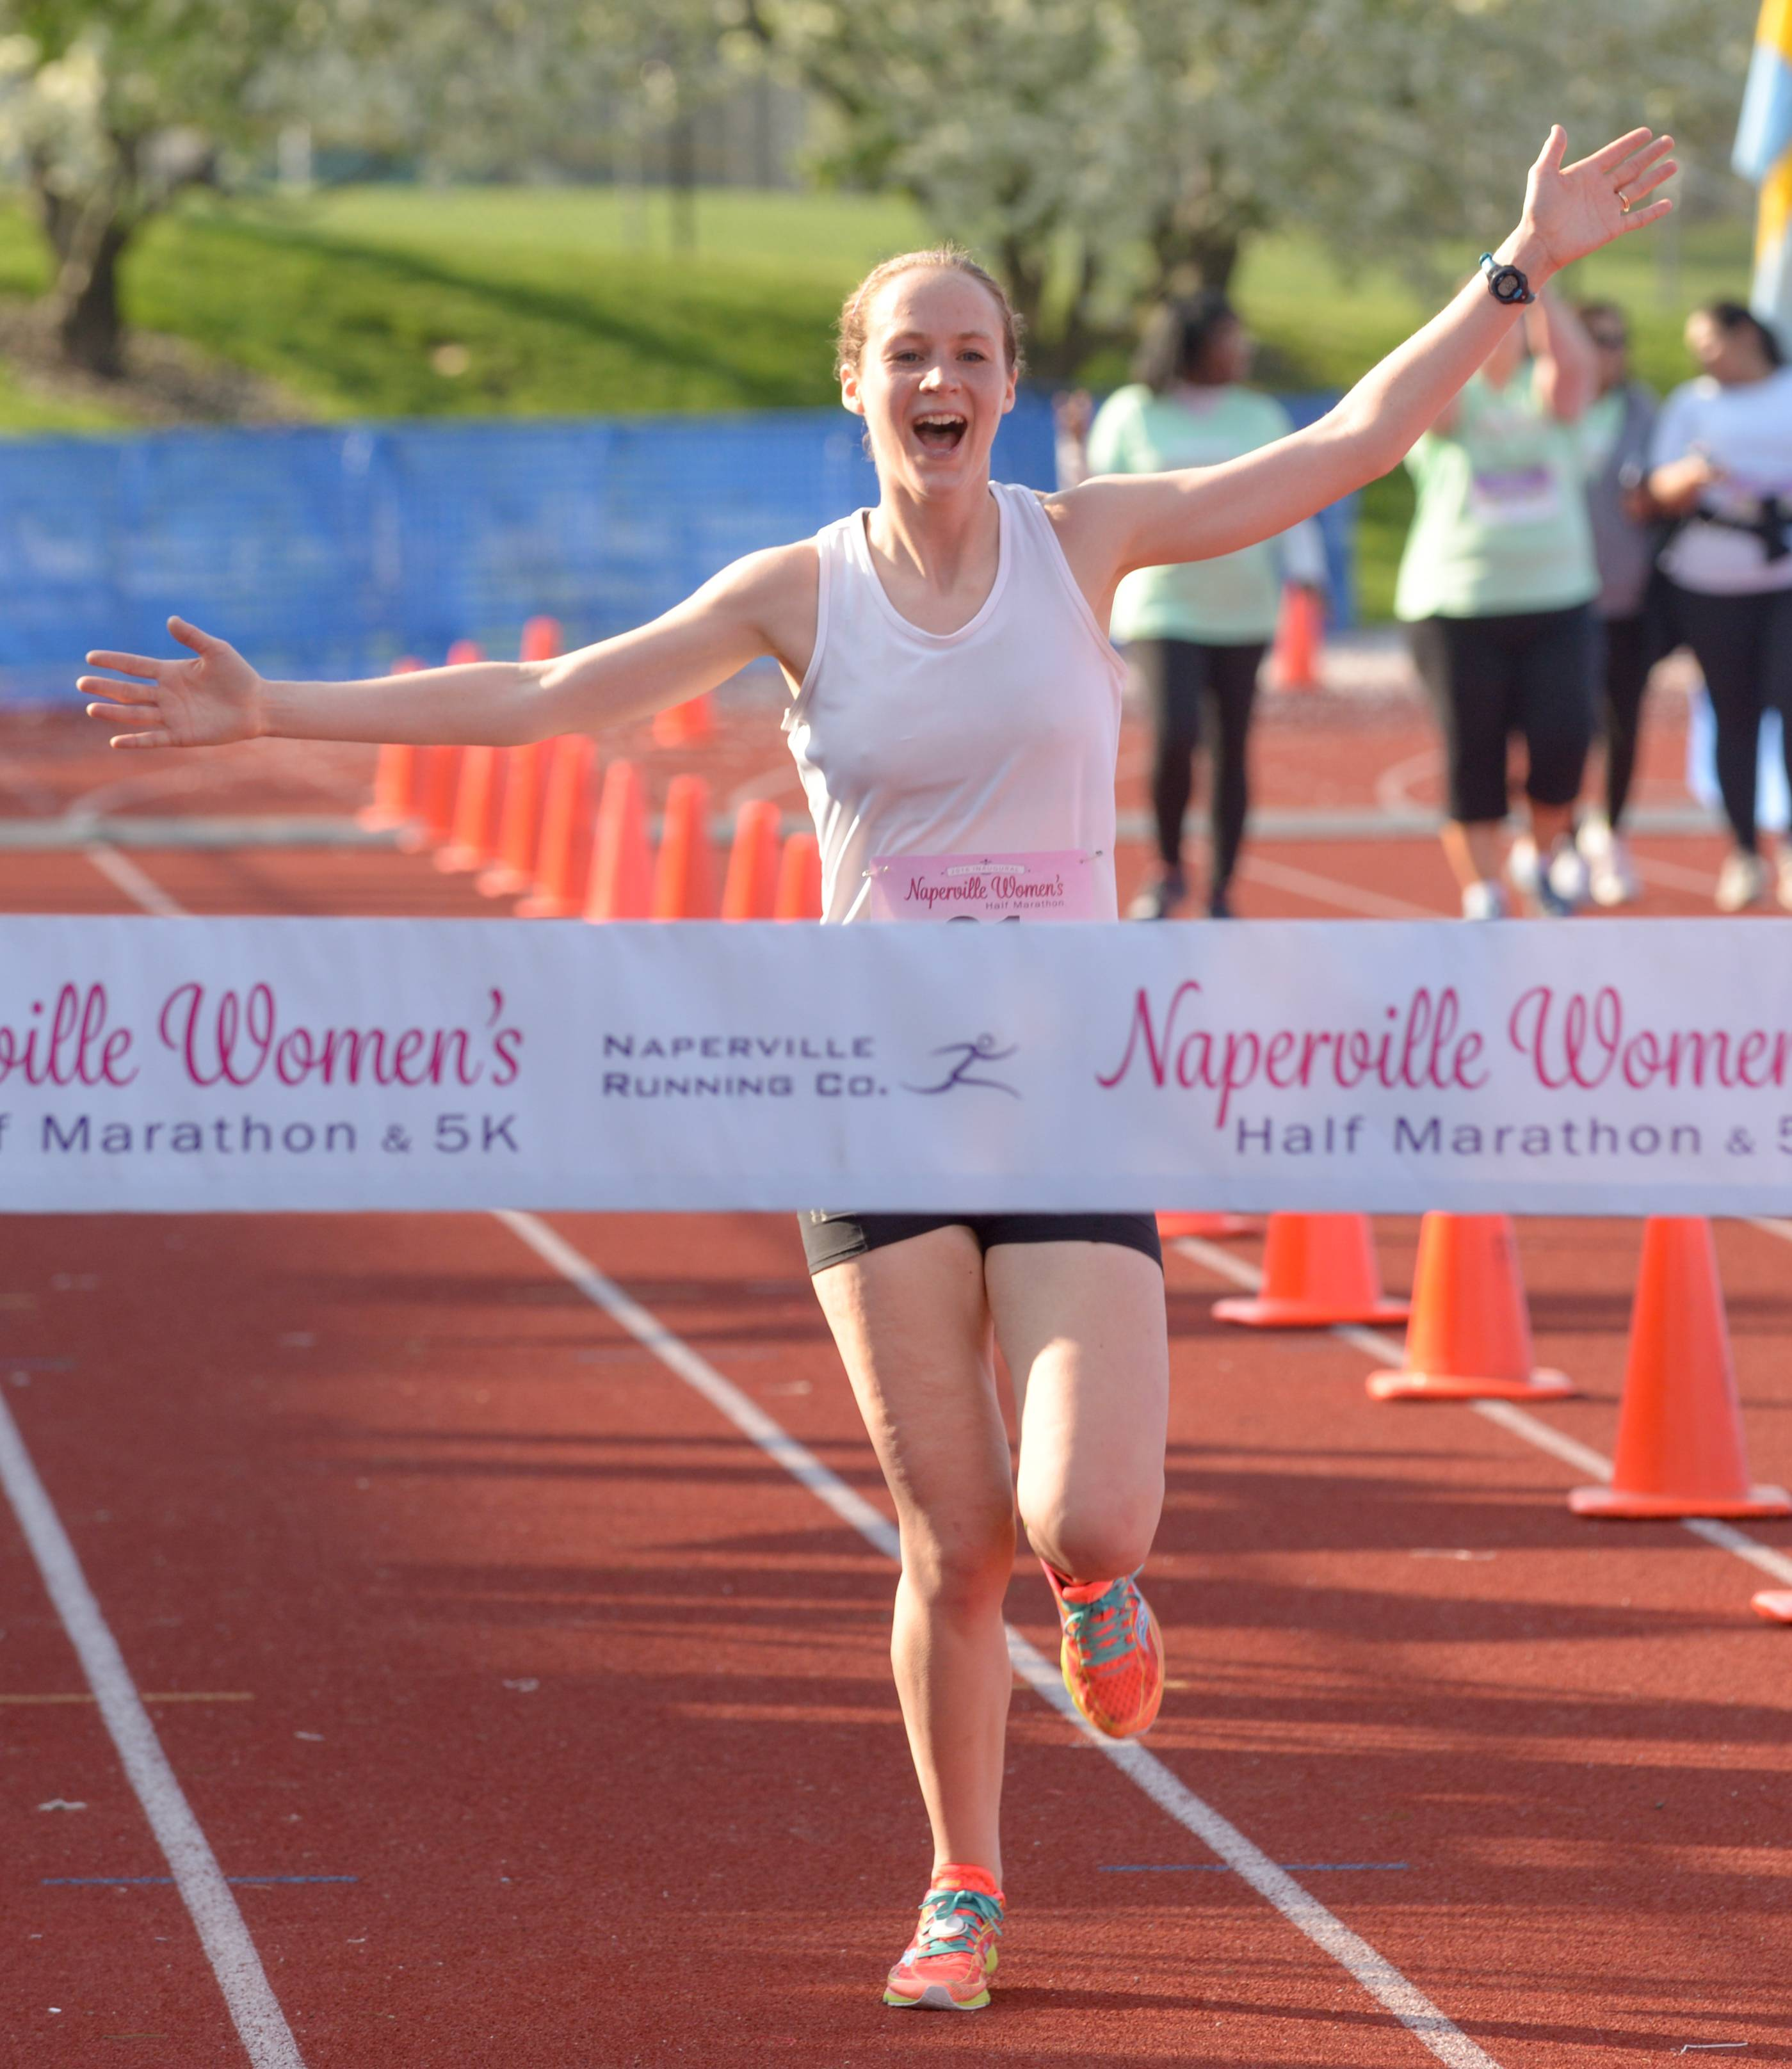 Naperville women's race drawing thousands from 33 states